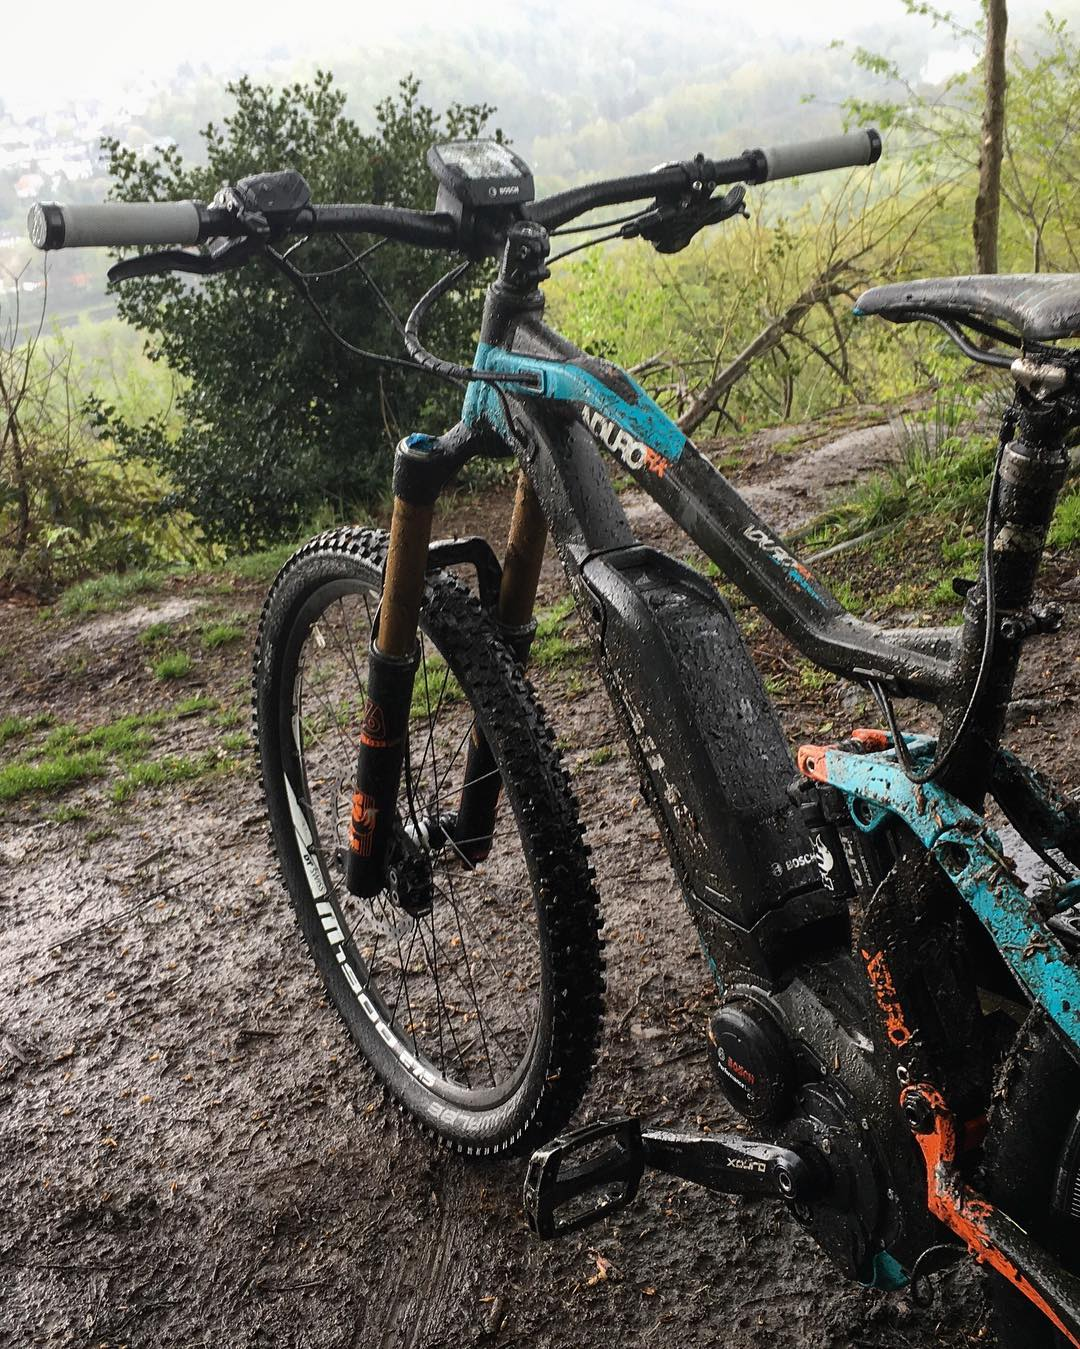 You can walk outside and think, 'Oh no it's raining, this sucks!' Or you can walk outside and say, 'oh yea it's raining, let's ride!'. The latter is always more rewarding :) #haibike #xduro #nduro #mtb